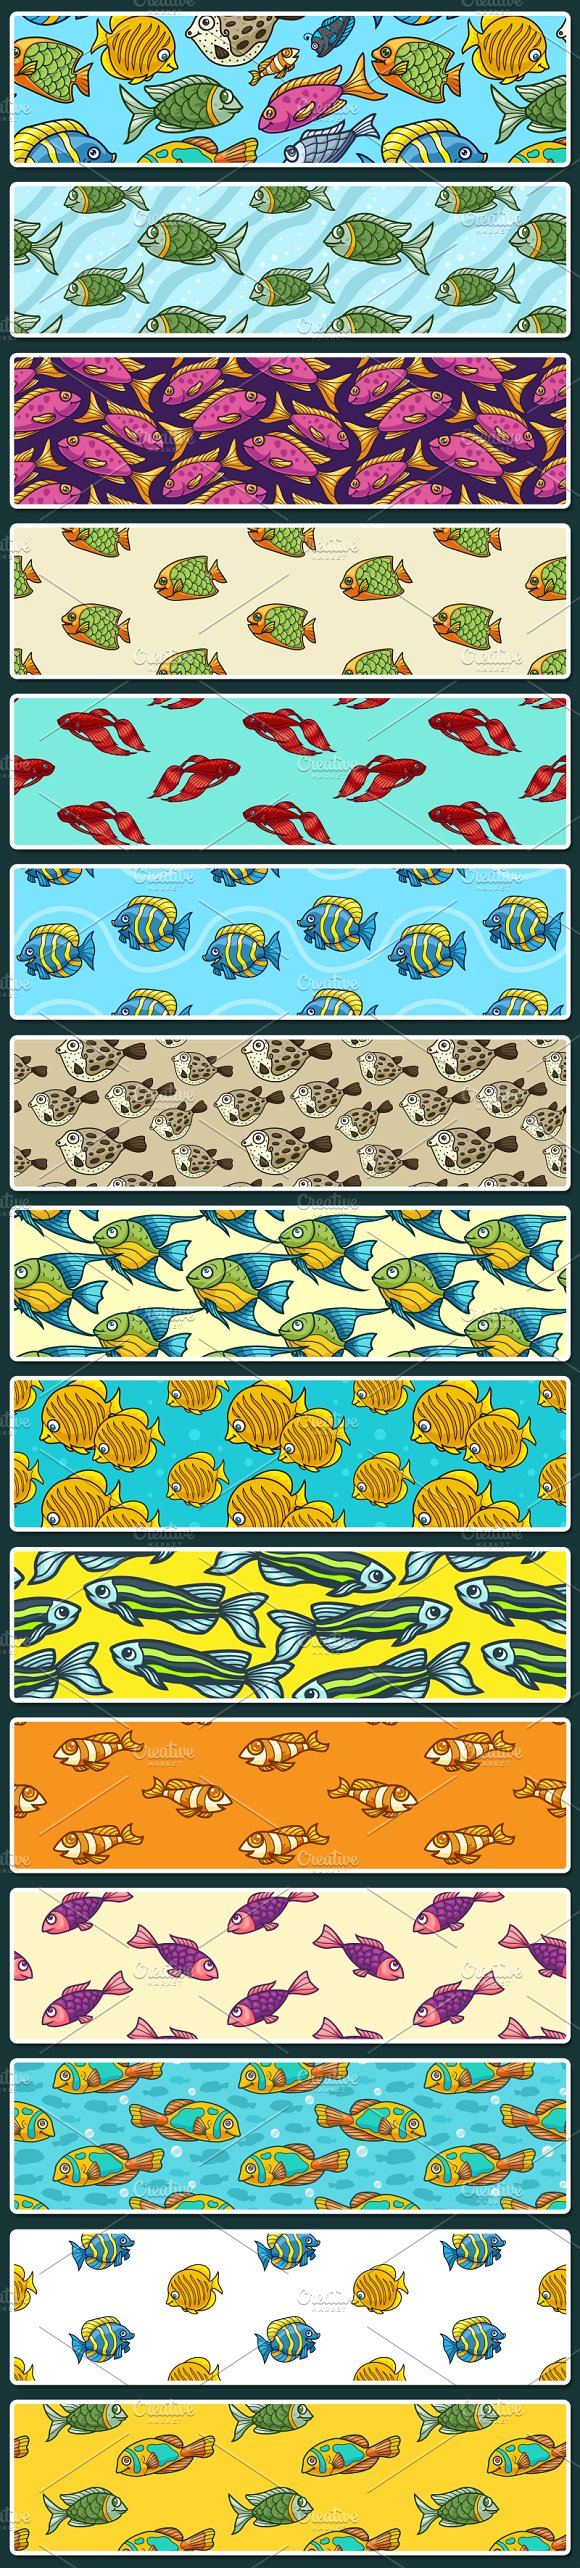 15 Fish Seamless Vector Patterns in Patterns - product preview 1